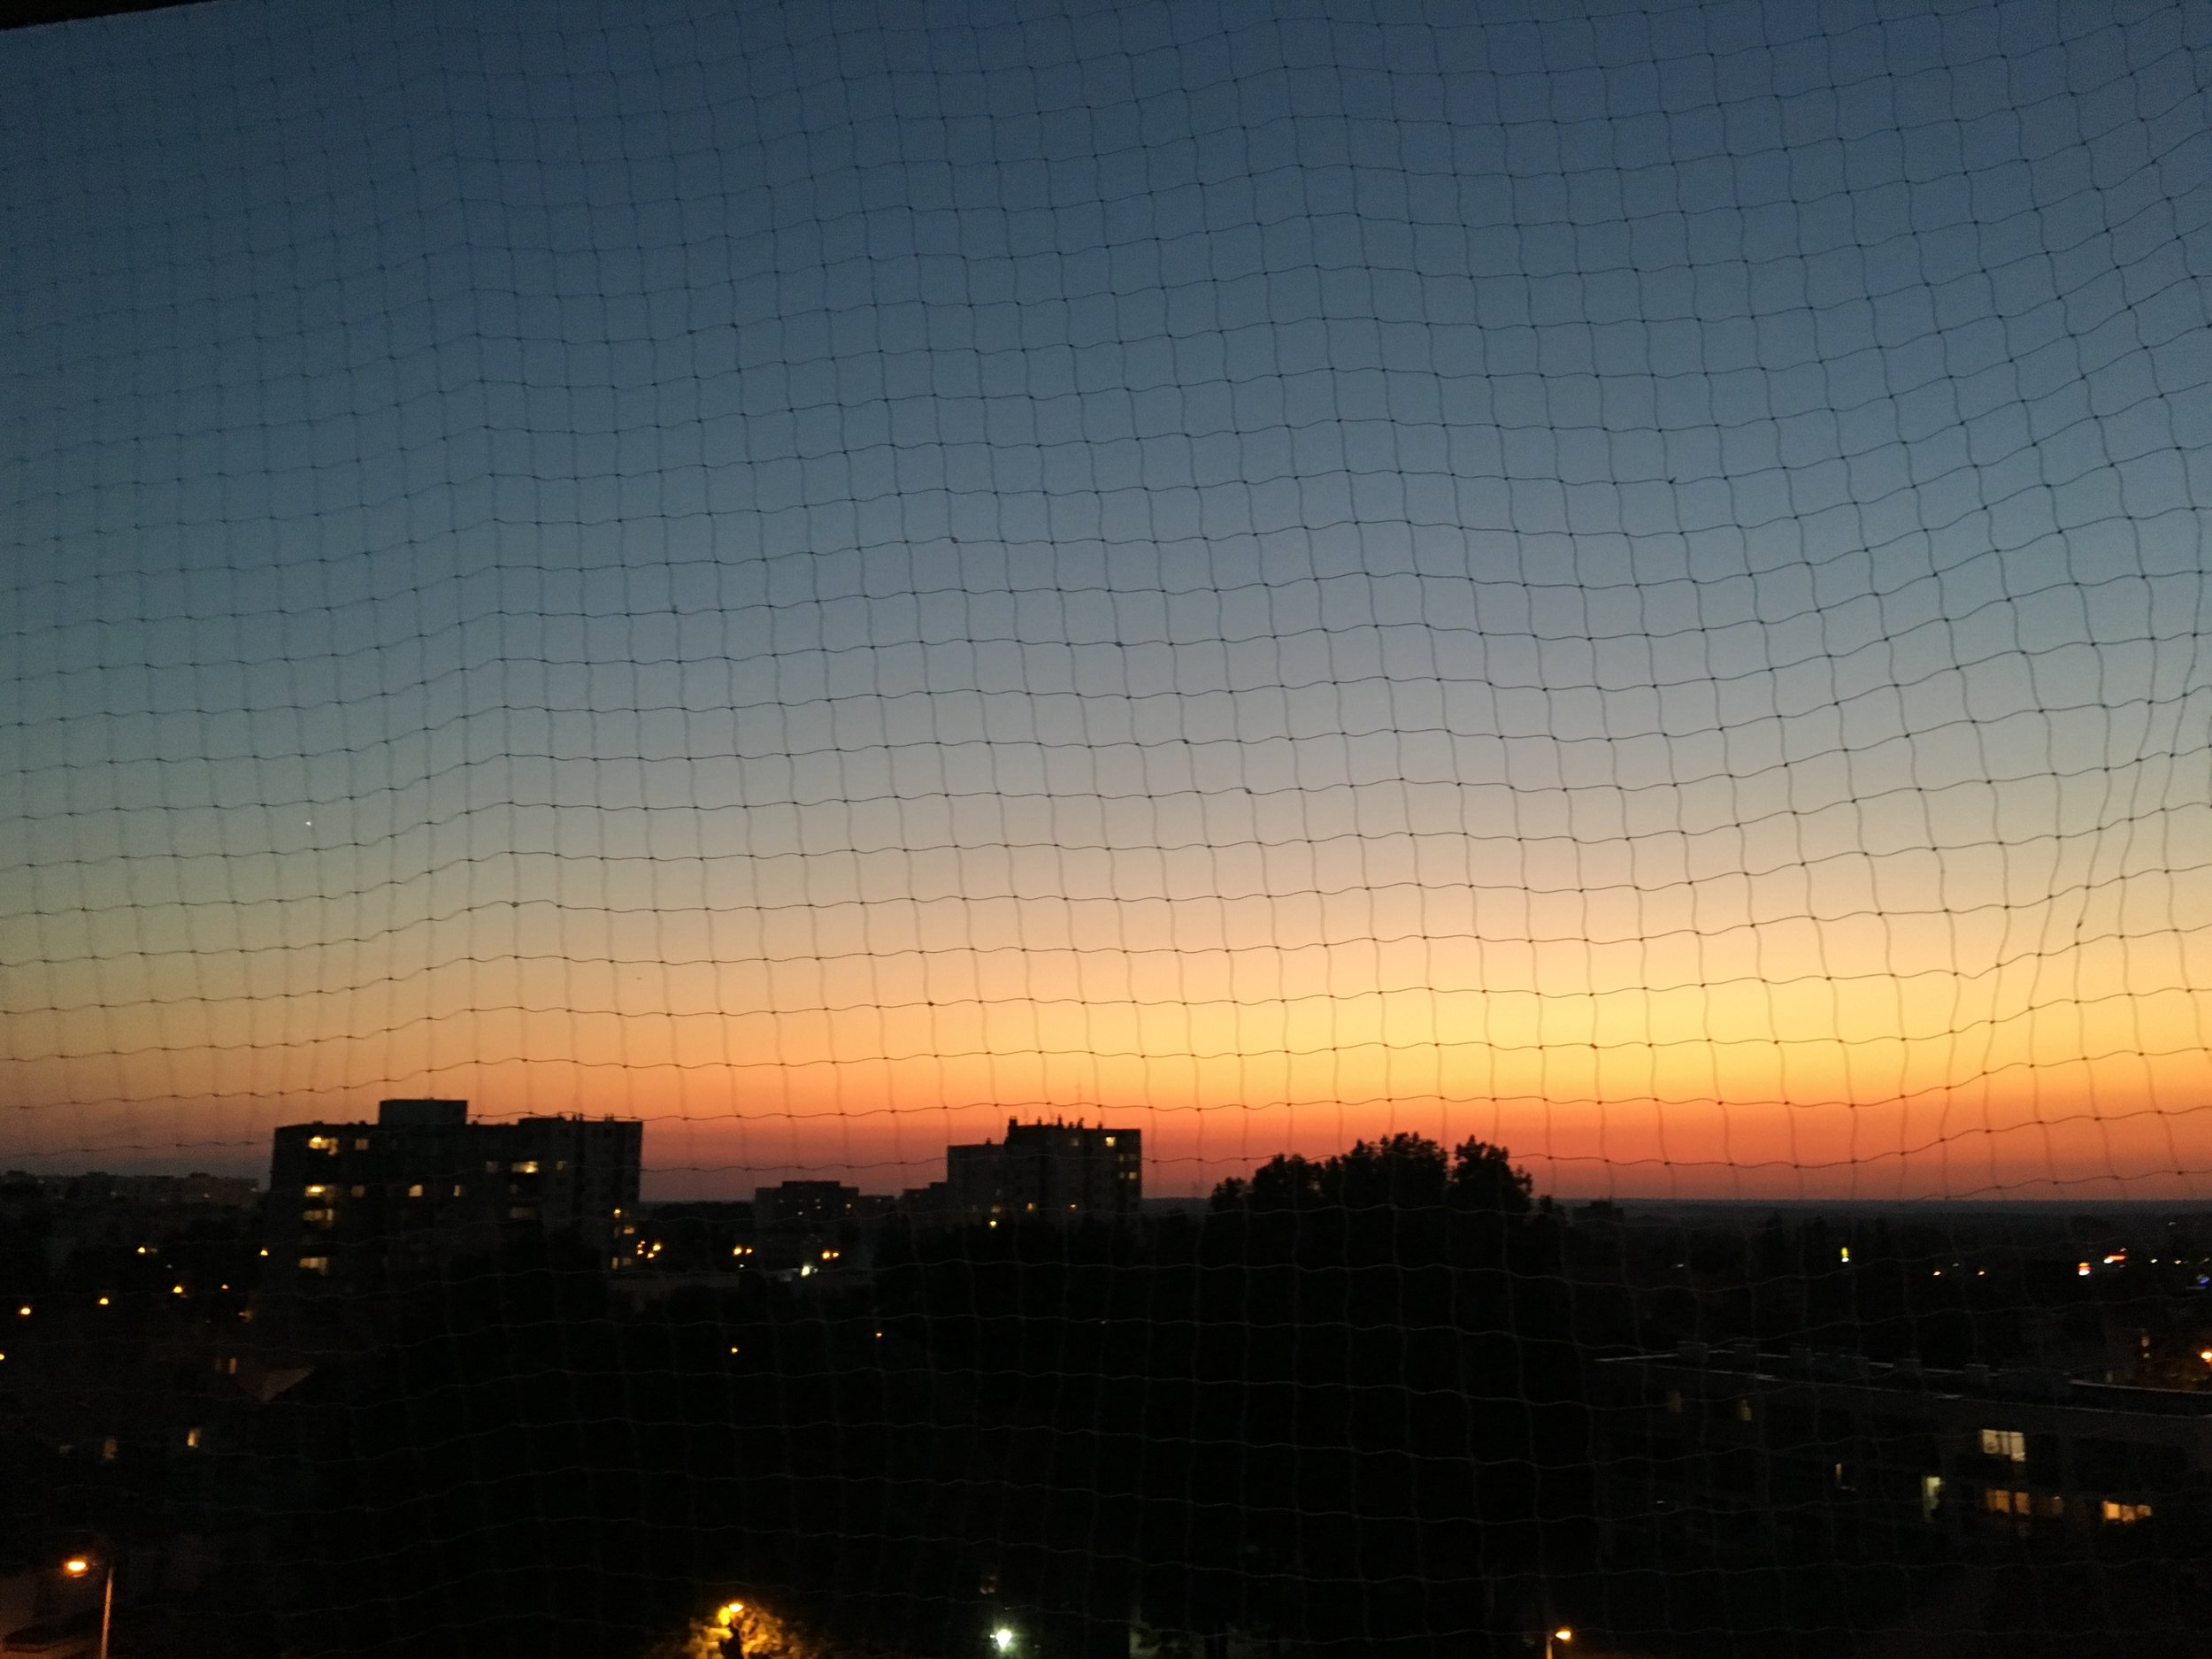 The sky behind a net, but what wouldn't you do for the cats ...